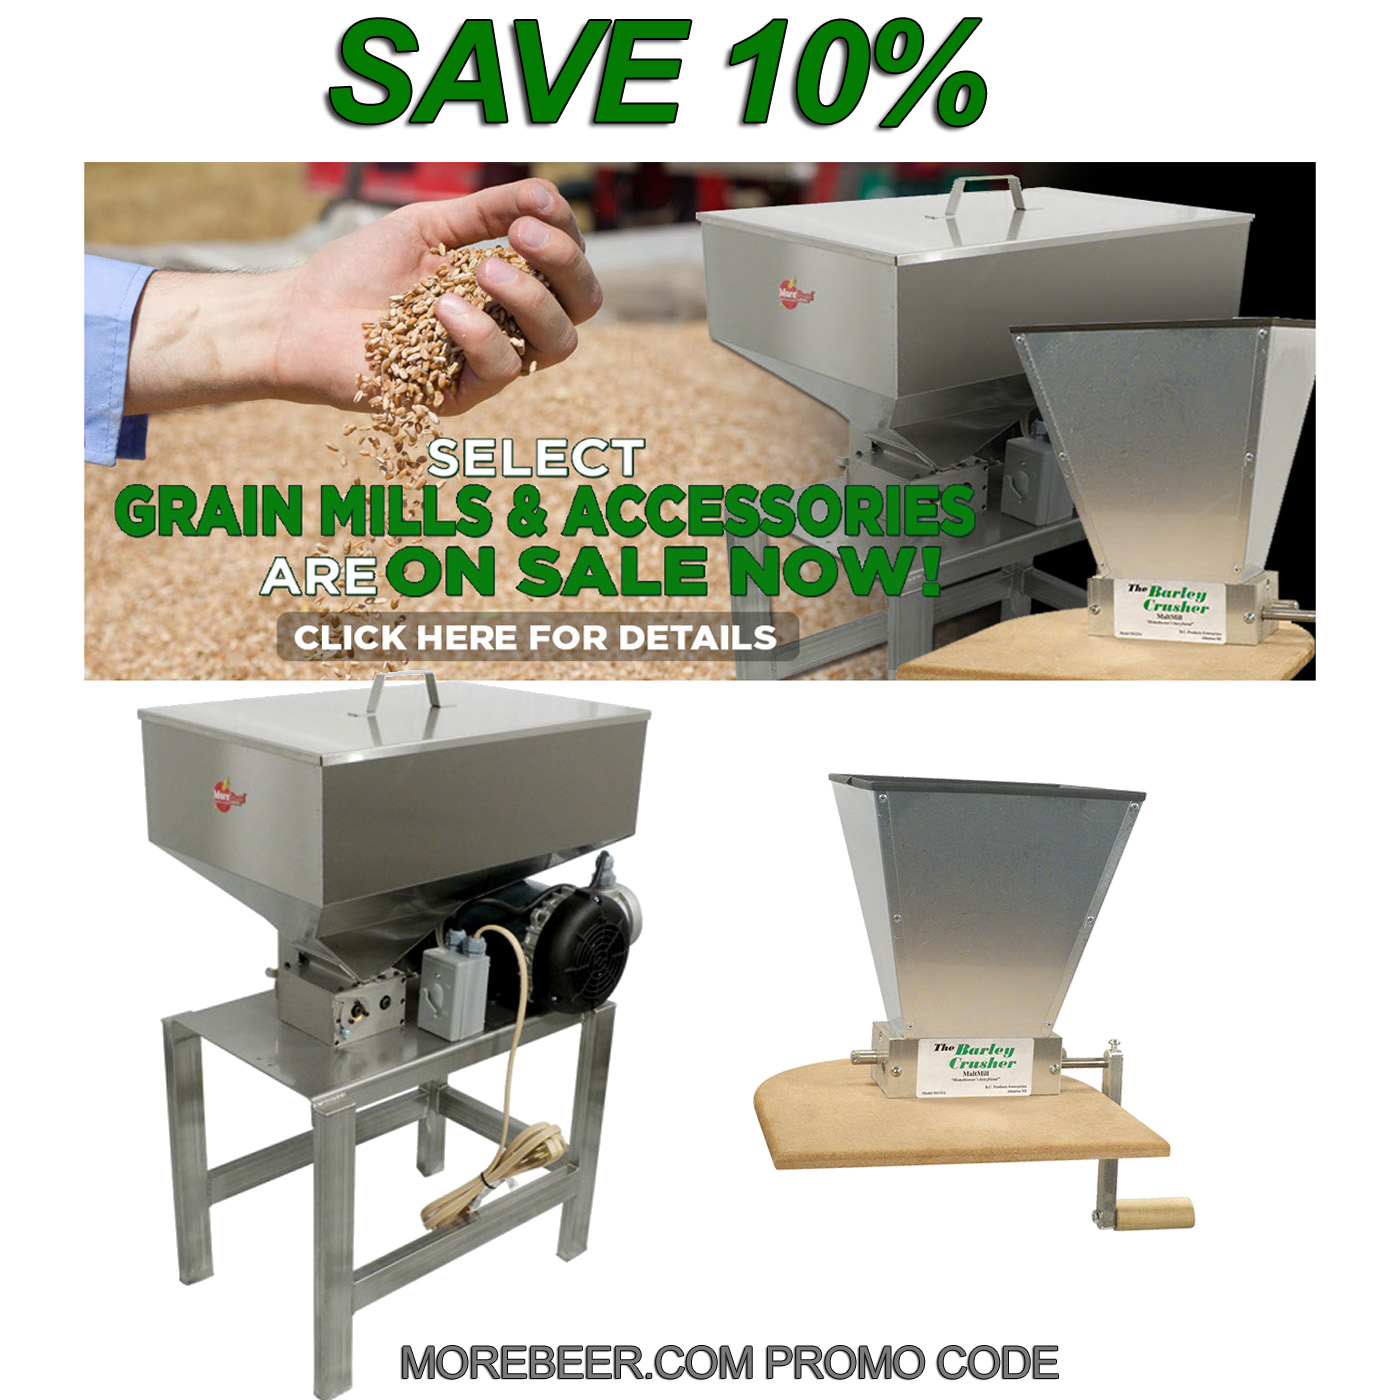 Home Brewer Promo Code for Save 10% On MoreBeer Grain Mill Products Coupon Code